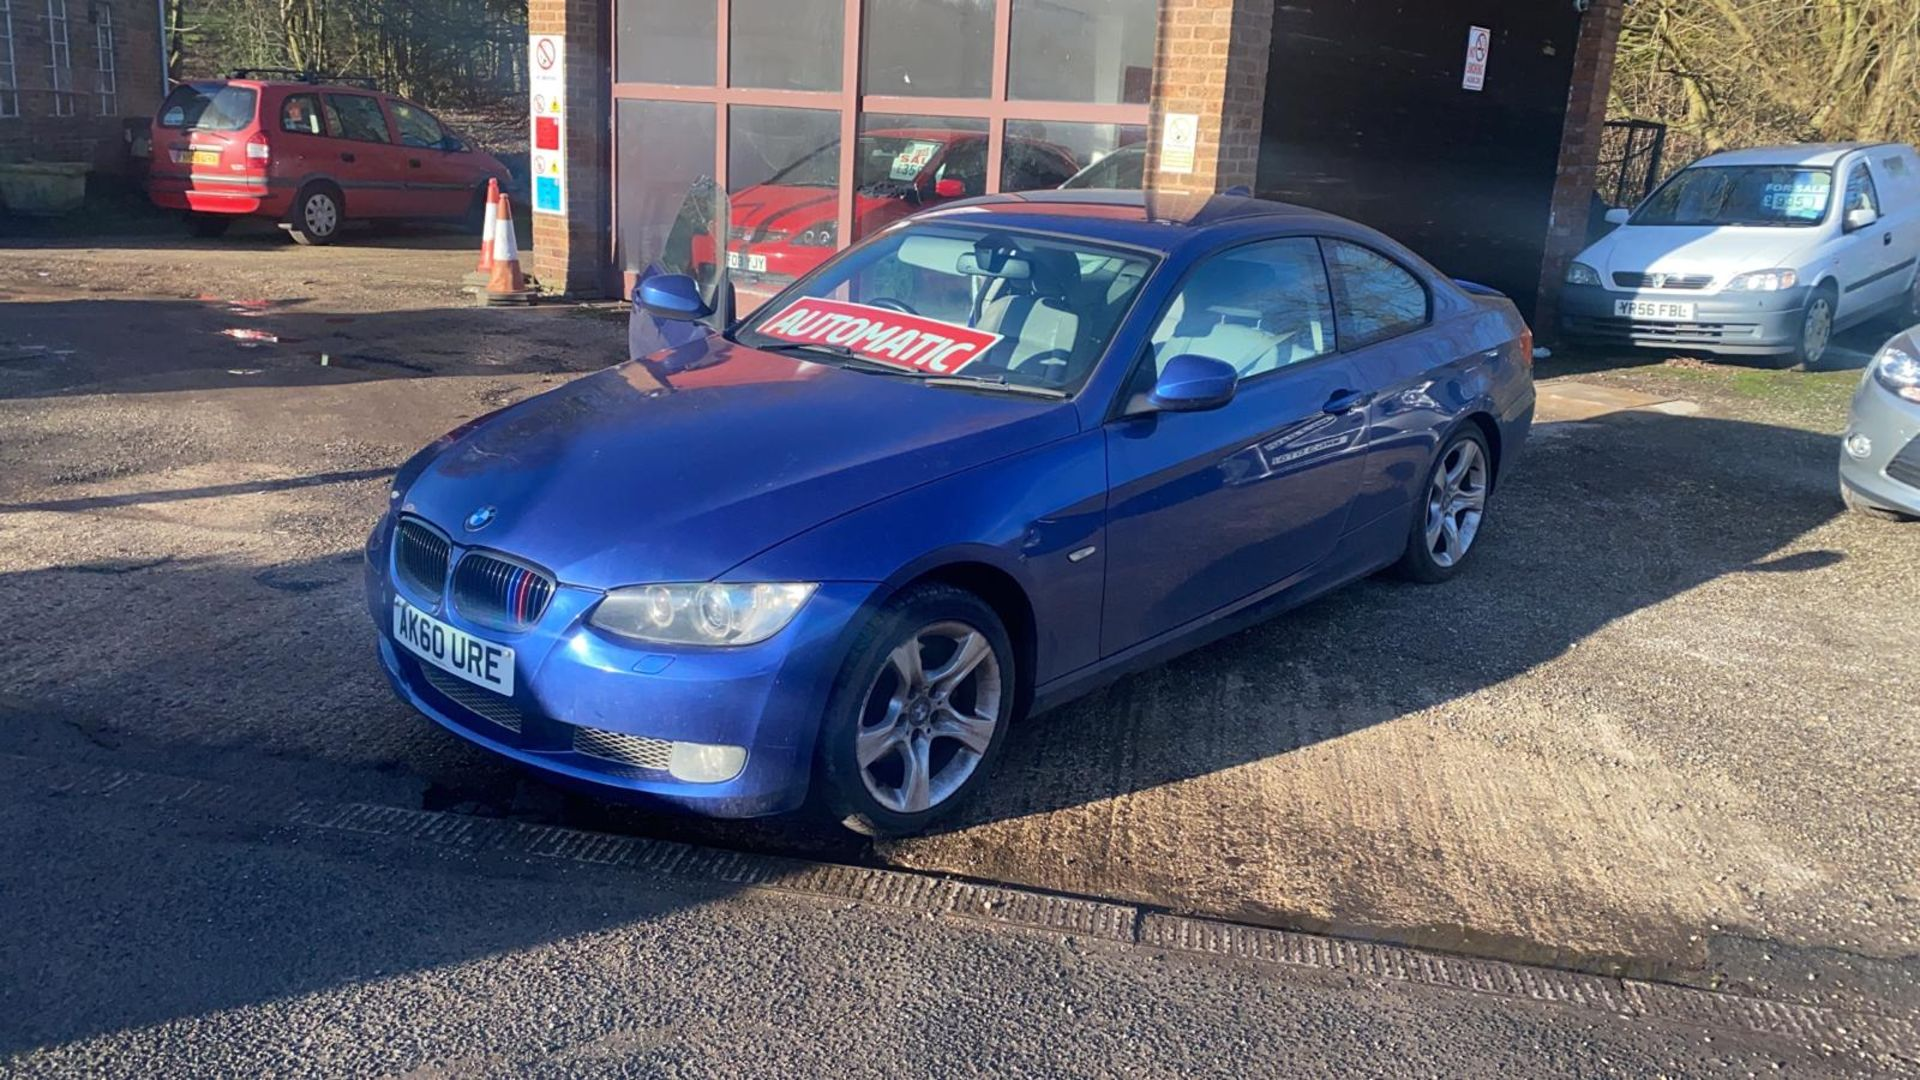 2010/60 REG BMW 320D SE AUTOMATIC 2.0 DIESEL BLUE COUPE 180 BHP *NO VAT*